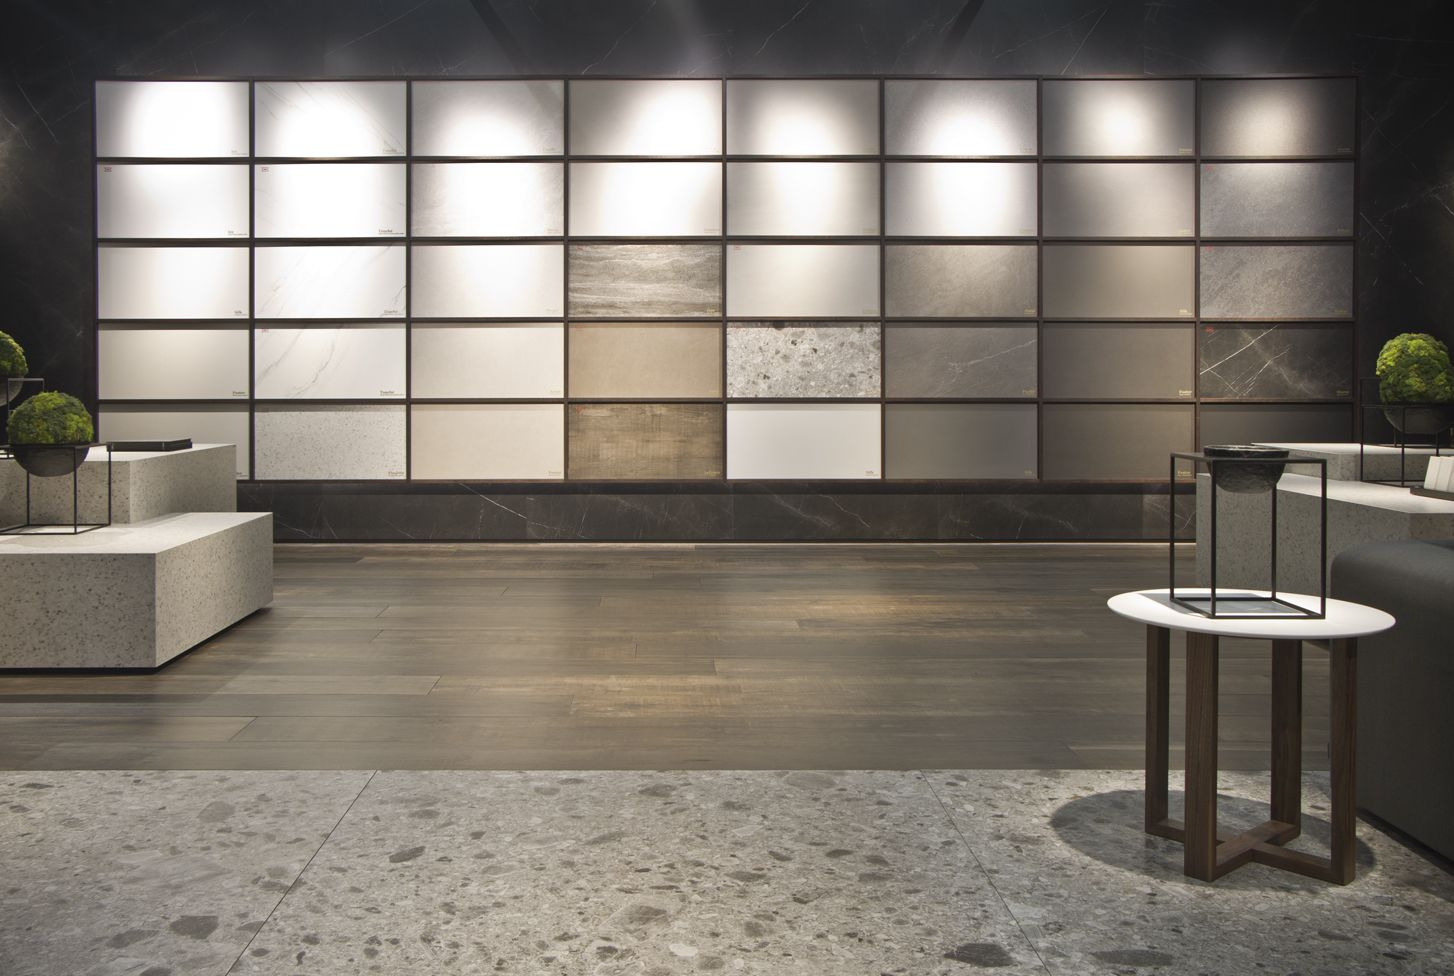 Inalco Presented All The Itop Surfaces For Countertops At